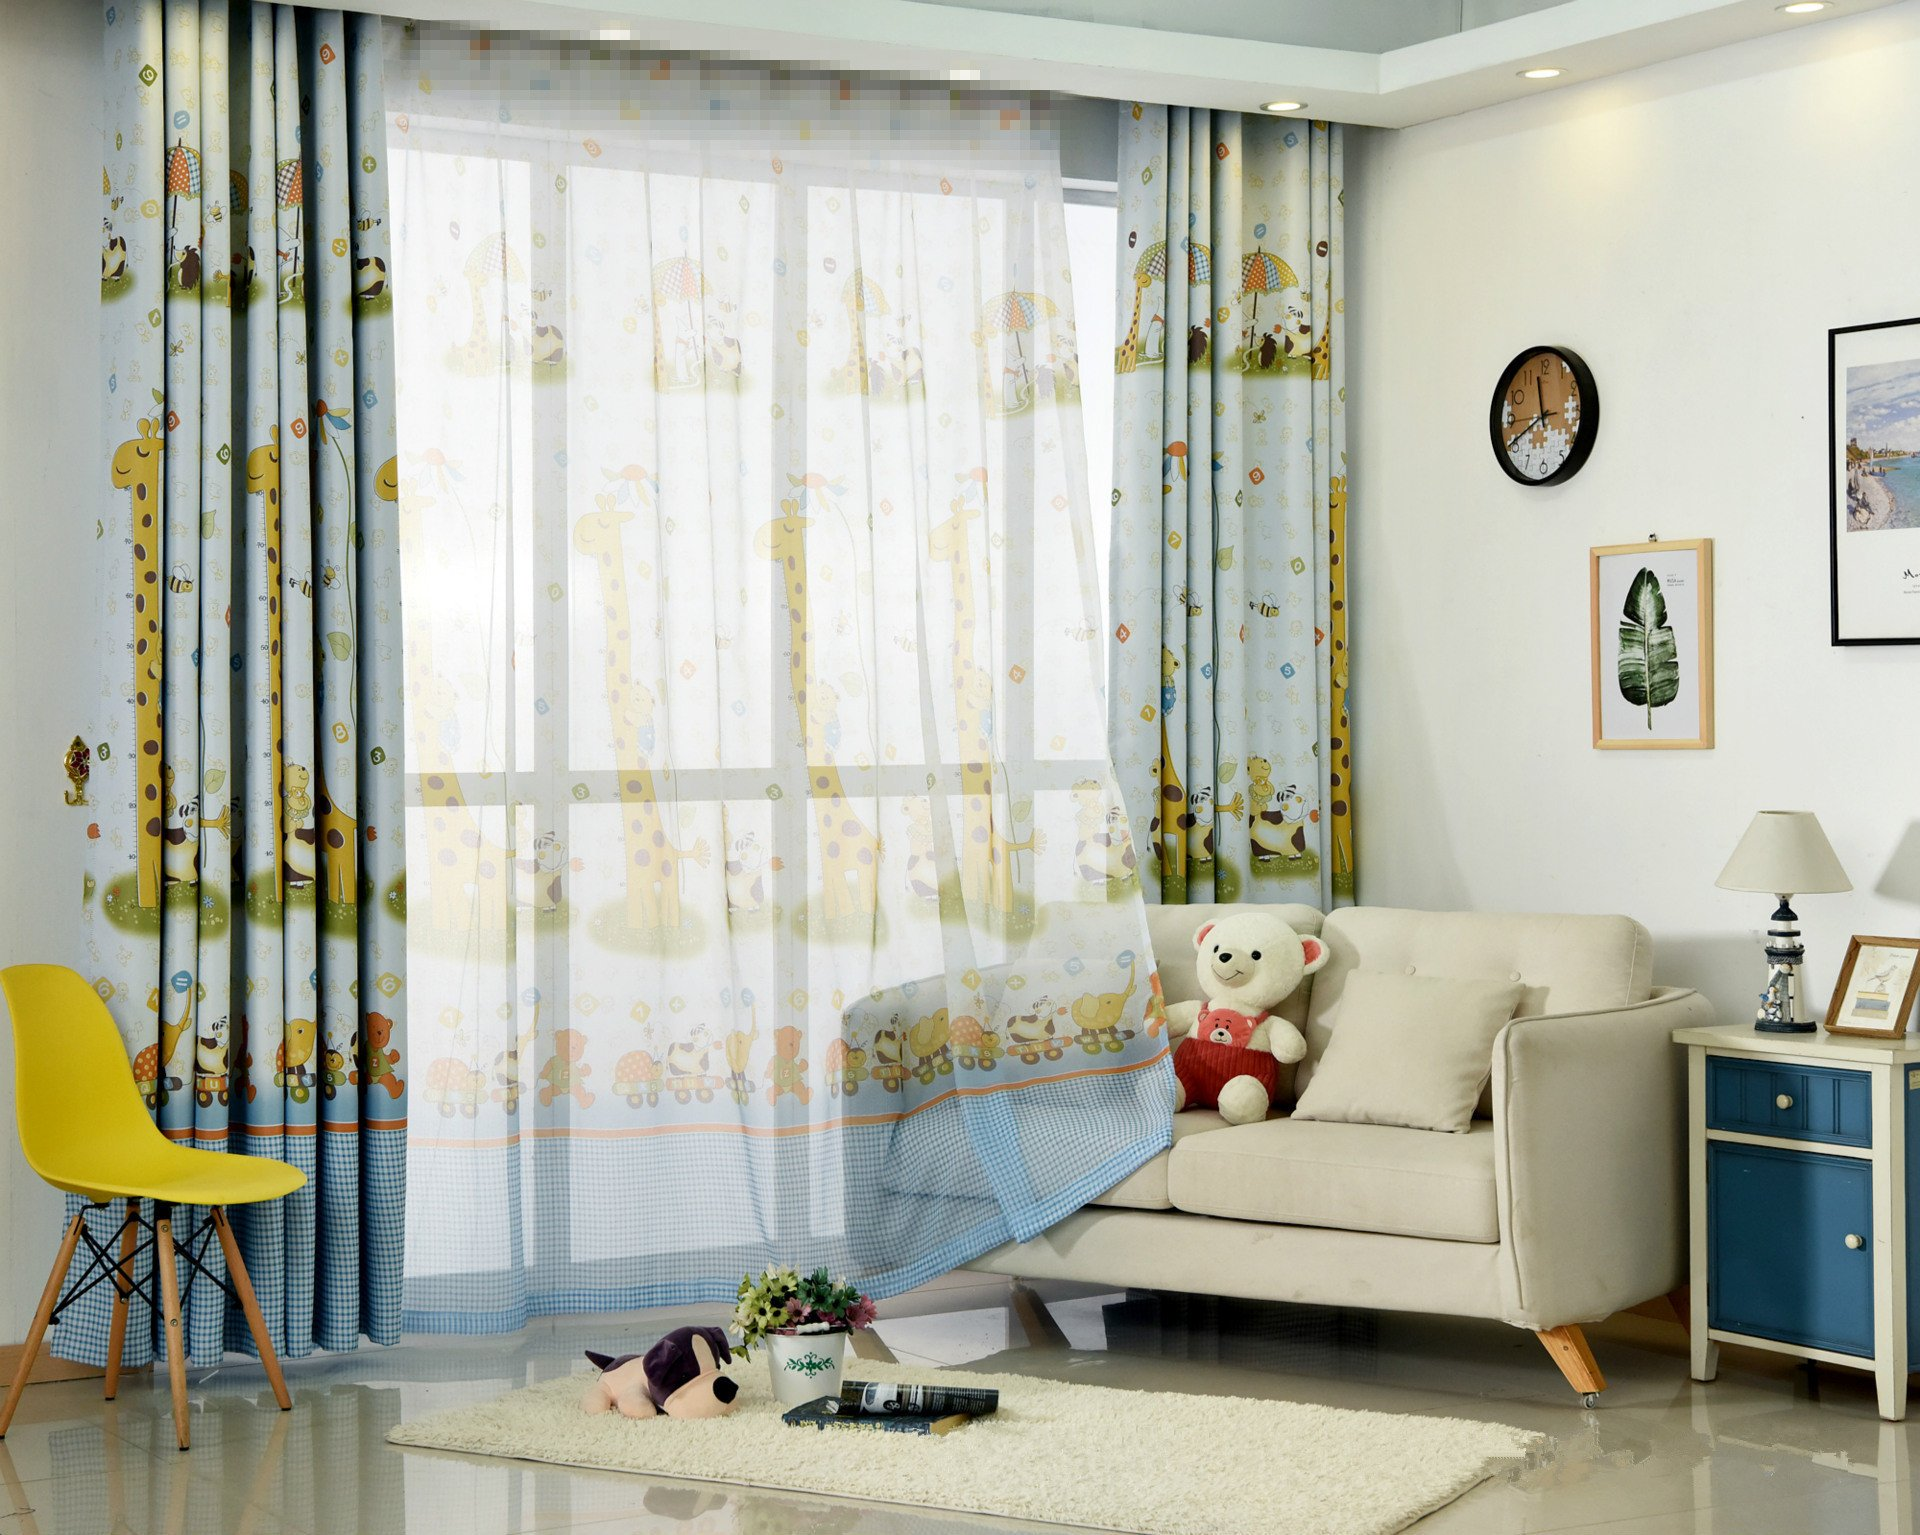 AliFish Sheer Curtains 96 Giraffe Deer Rod Pocket Tulle Sheer Voile Panel Curtains Lovely Zoo Animals Window Curtains/Draperies/Panels for Kids Room Bedroom 1 Panel W39 x L96 inch